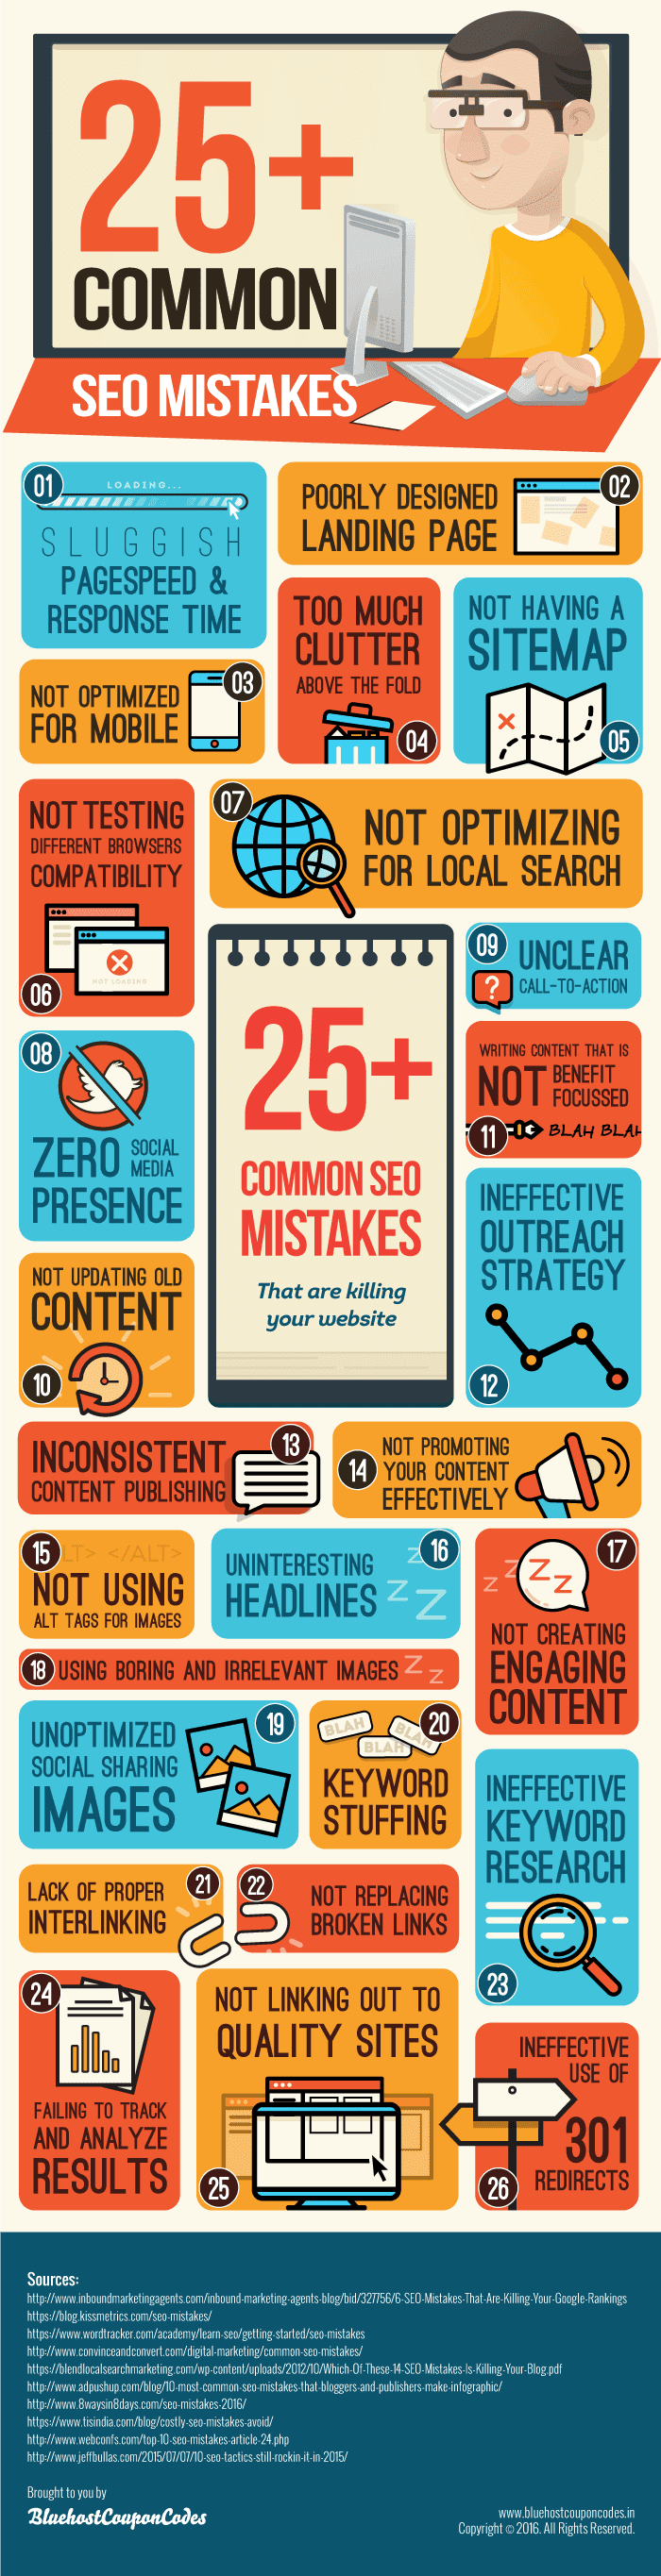 25+ Common SEO Mistakes That Are Killing Your Website[Infographic] by the team at bluehostcouponcodes.in